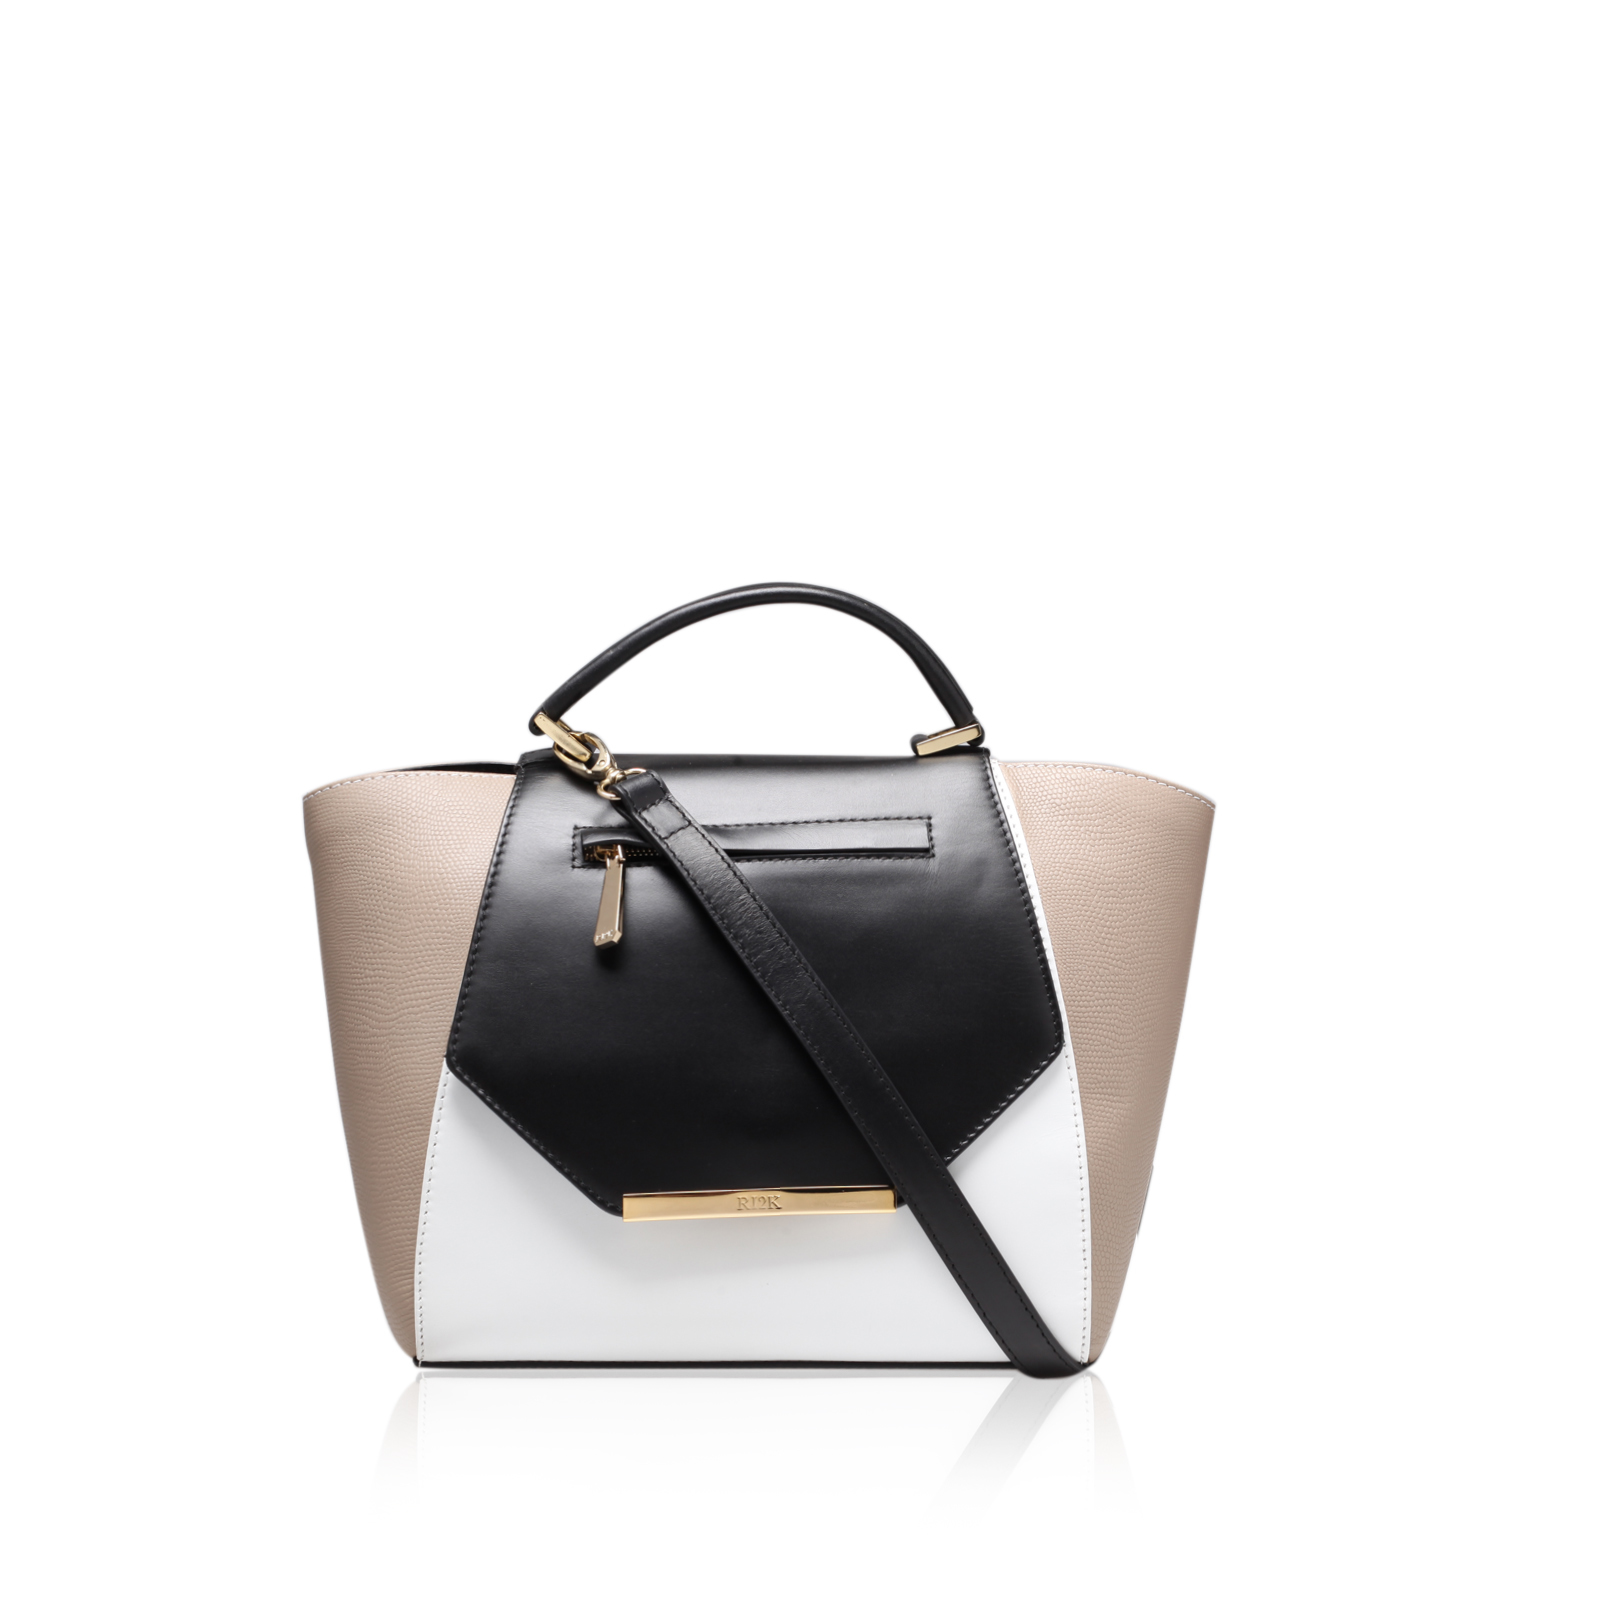 ISABELLA LEATHER TOTE